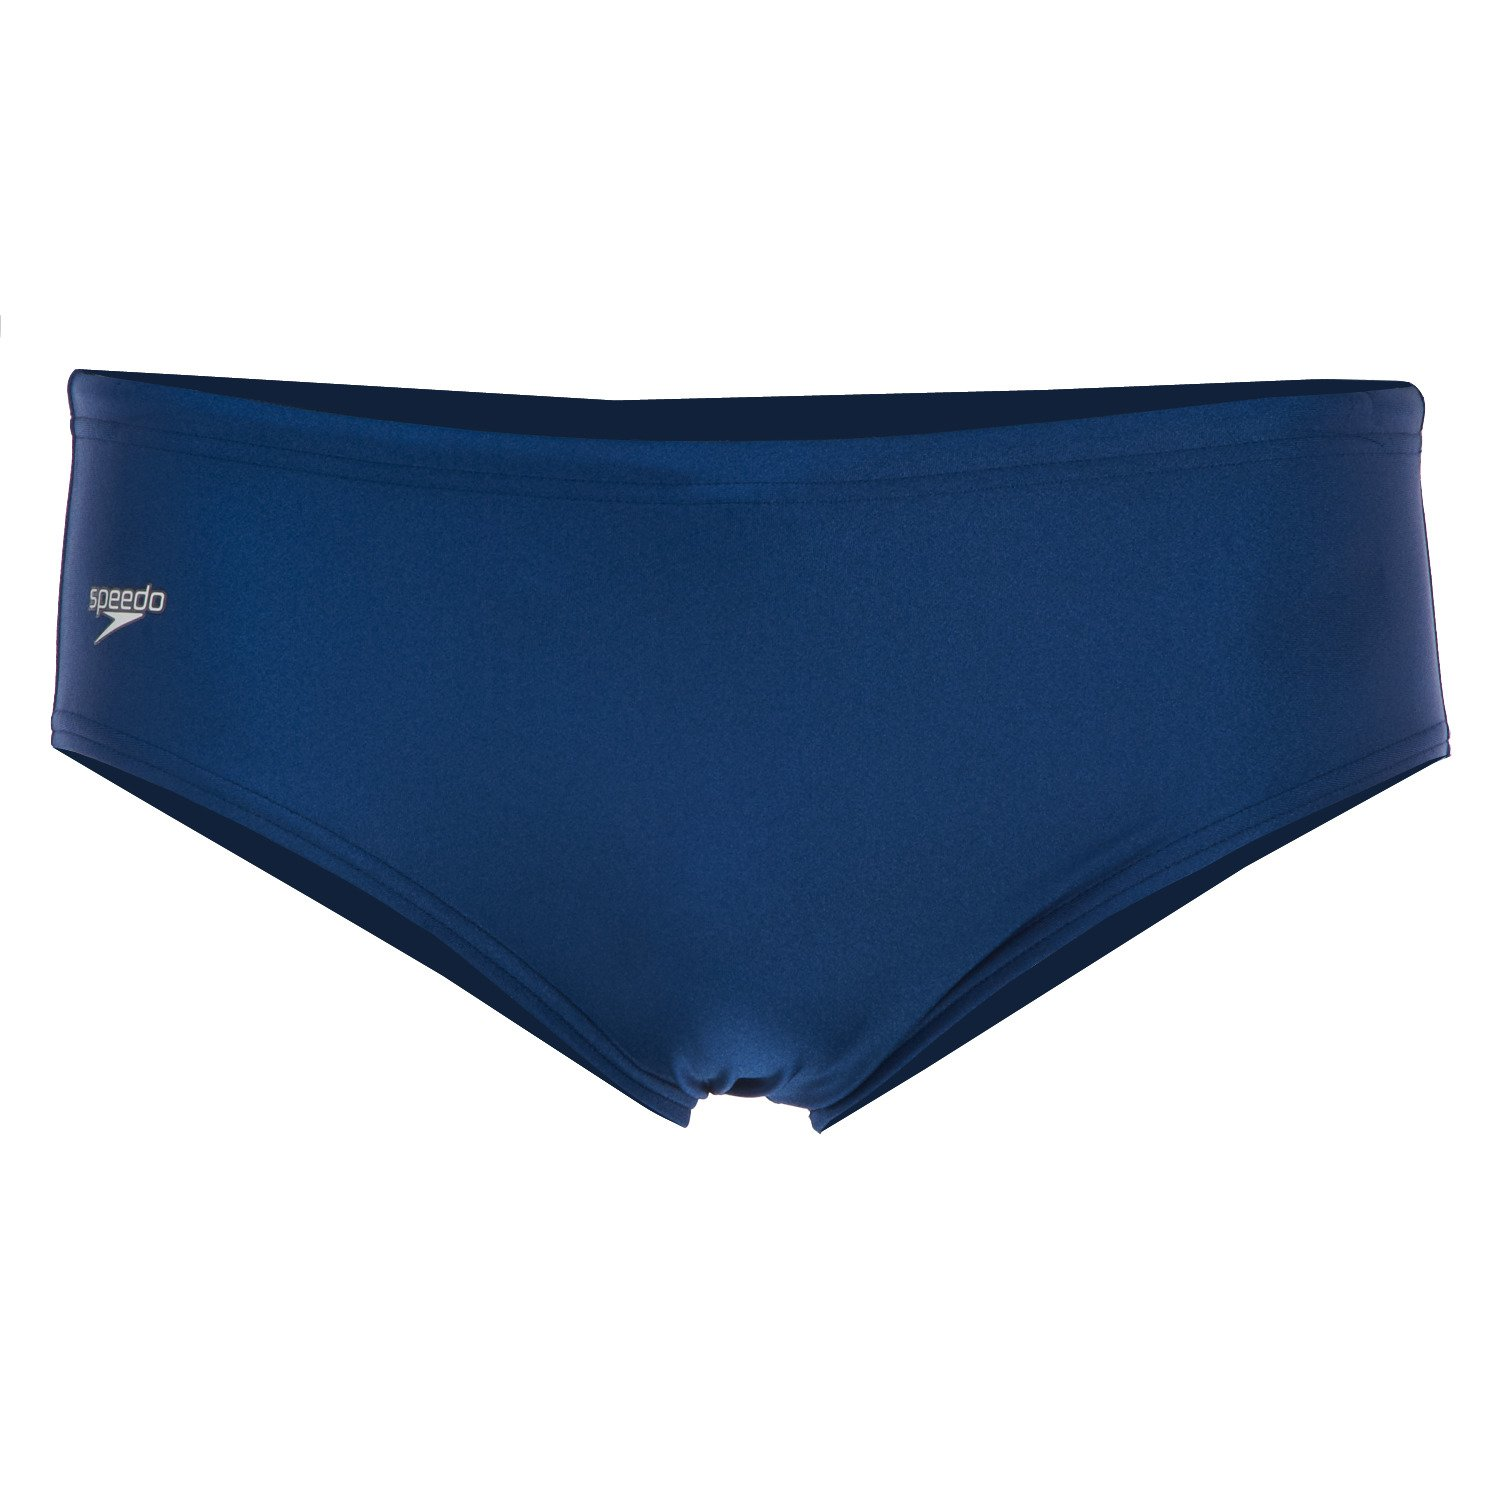 c3b95eda5e Display product reviews for Speedo Men s Solid Lycra Brief